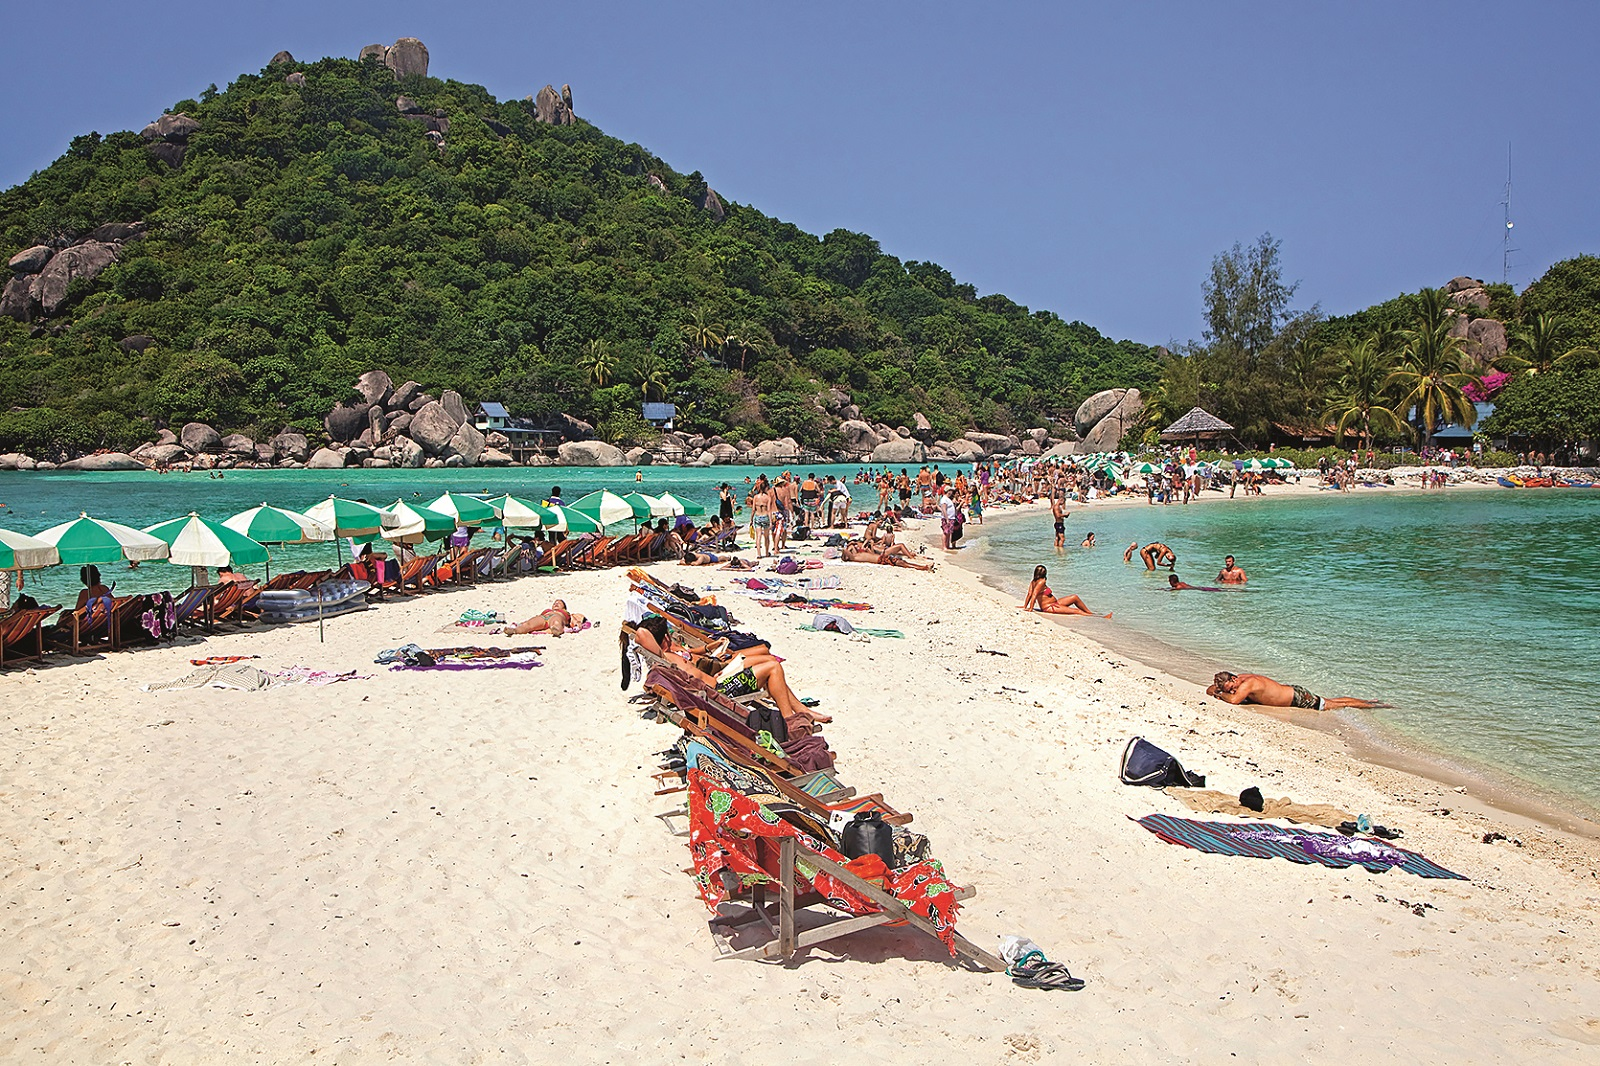 Western tourists sunbathing on beach of Ko Nang Yuan / Nangyuan, small island near Ko Tao along the Central Gulf Coast in Southern Thailand. (Photo by: Arterra/Universal Images Group via Getty Images)